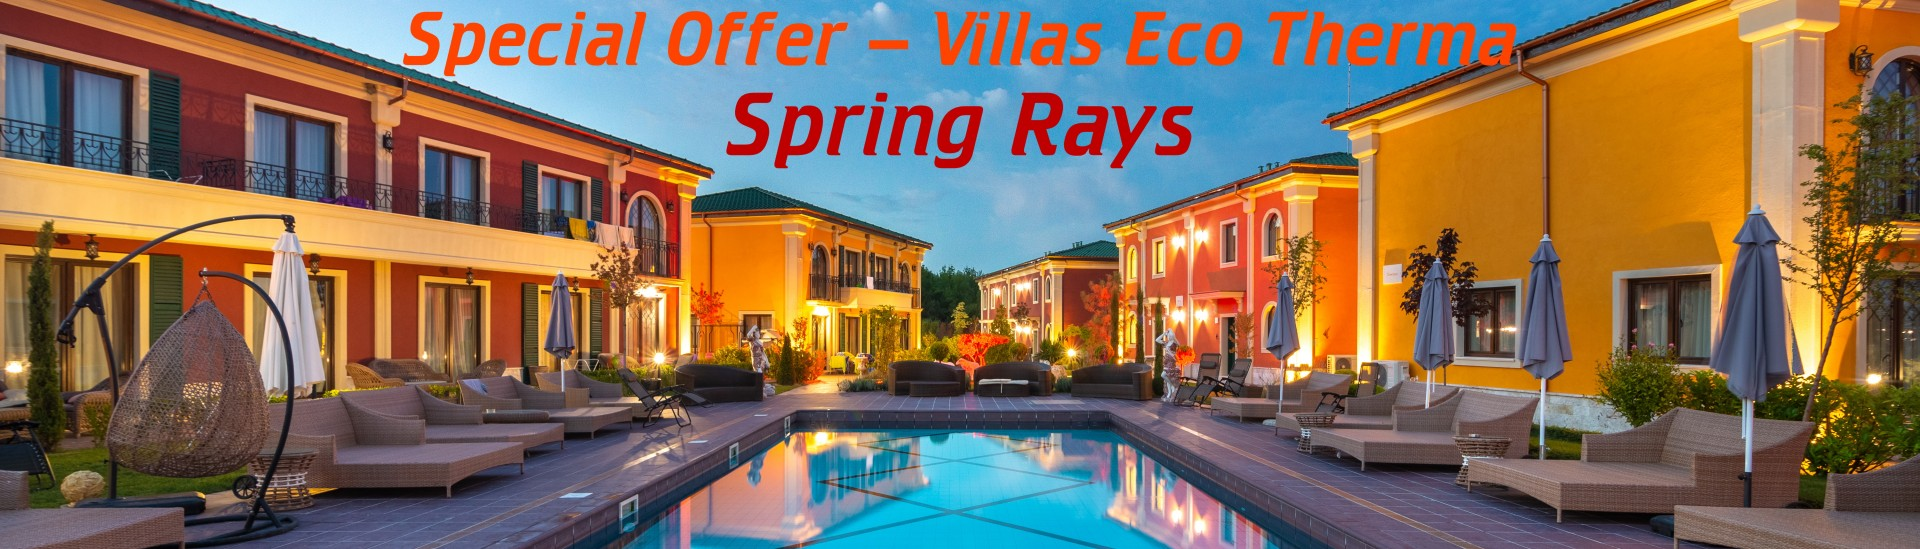 Spring Rays - Special offer for Villas Eco Therma